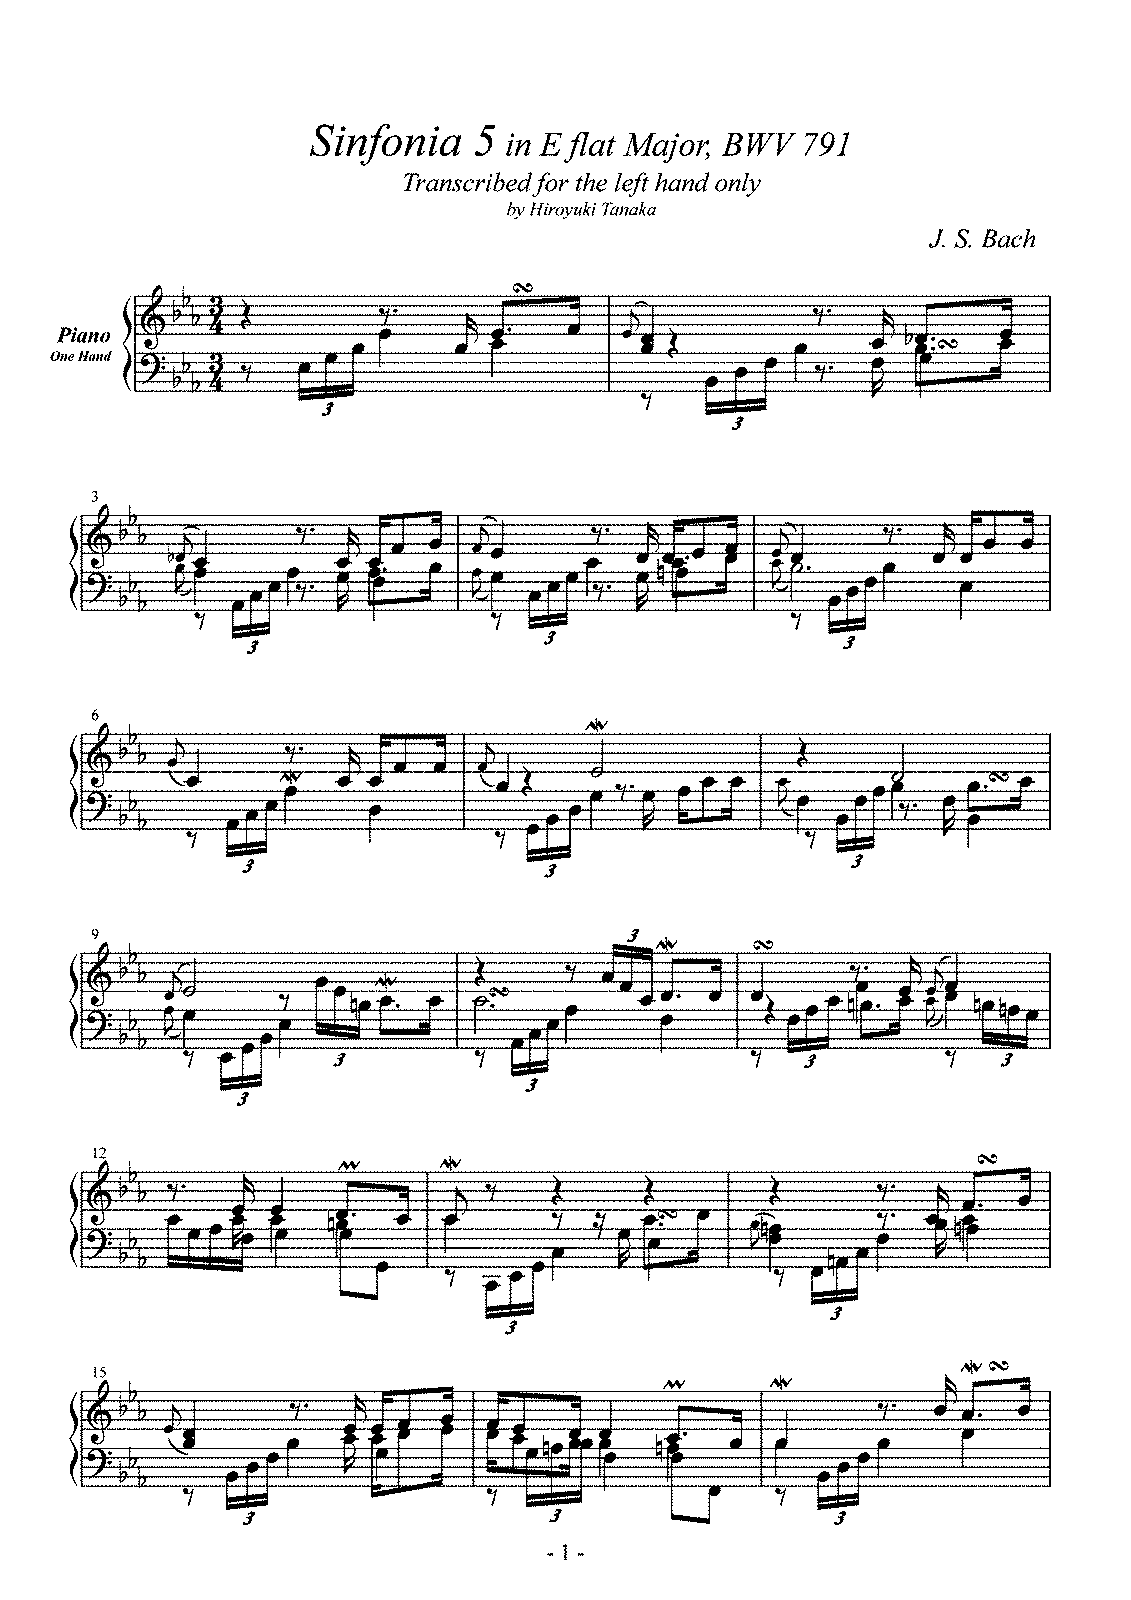 PMLP03268-Sinfonia No. 5 BWV791 for left hand only.mus.pdf